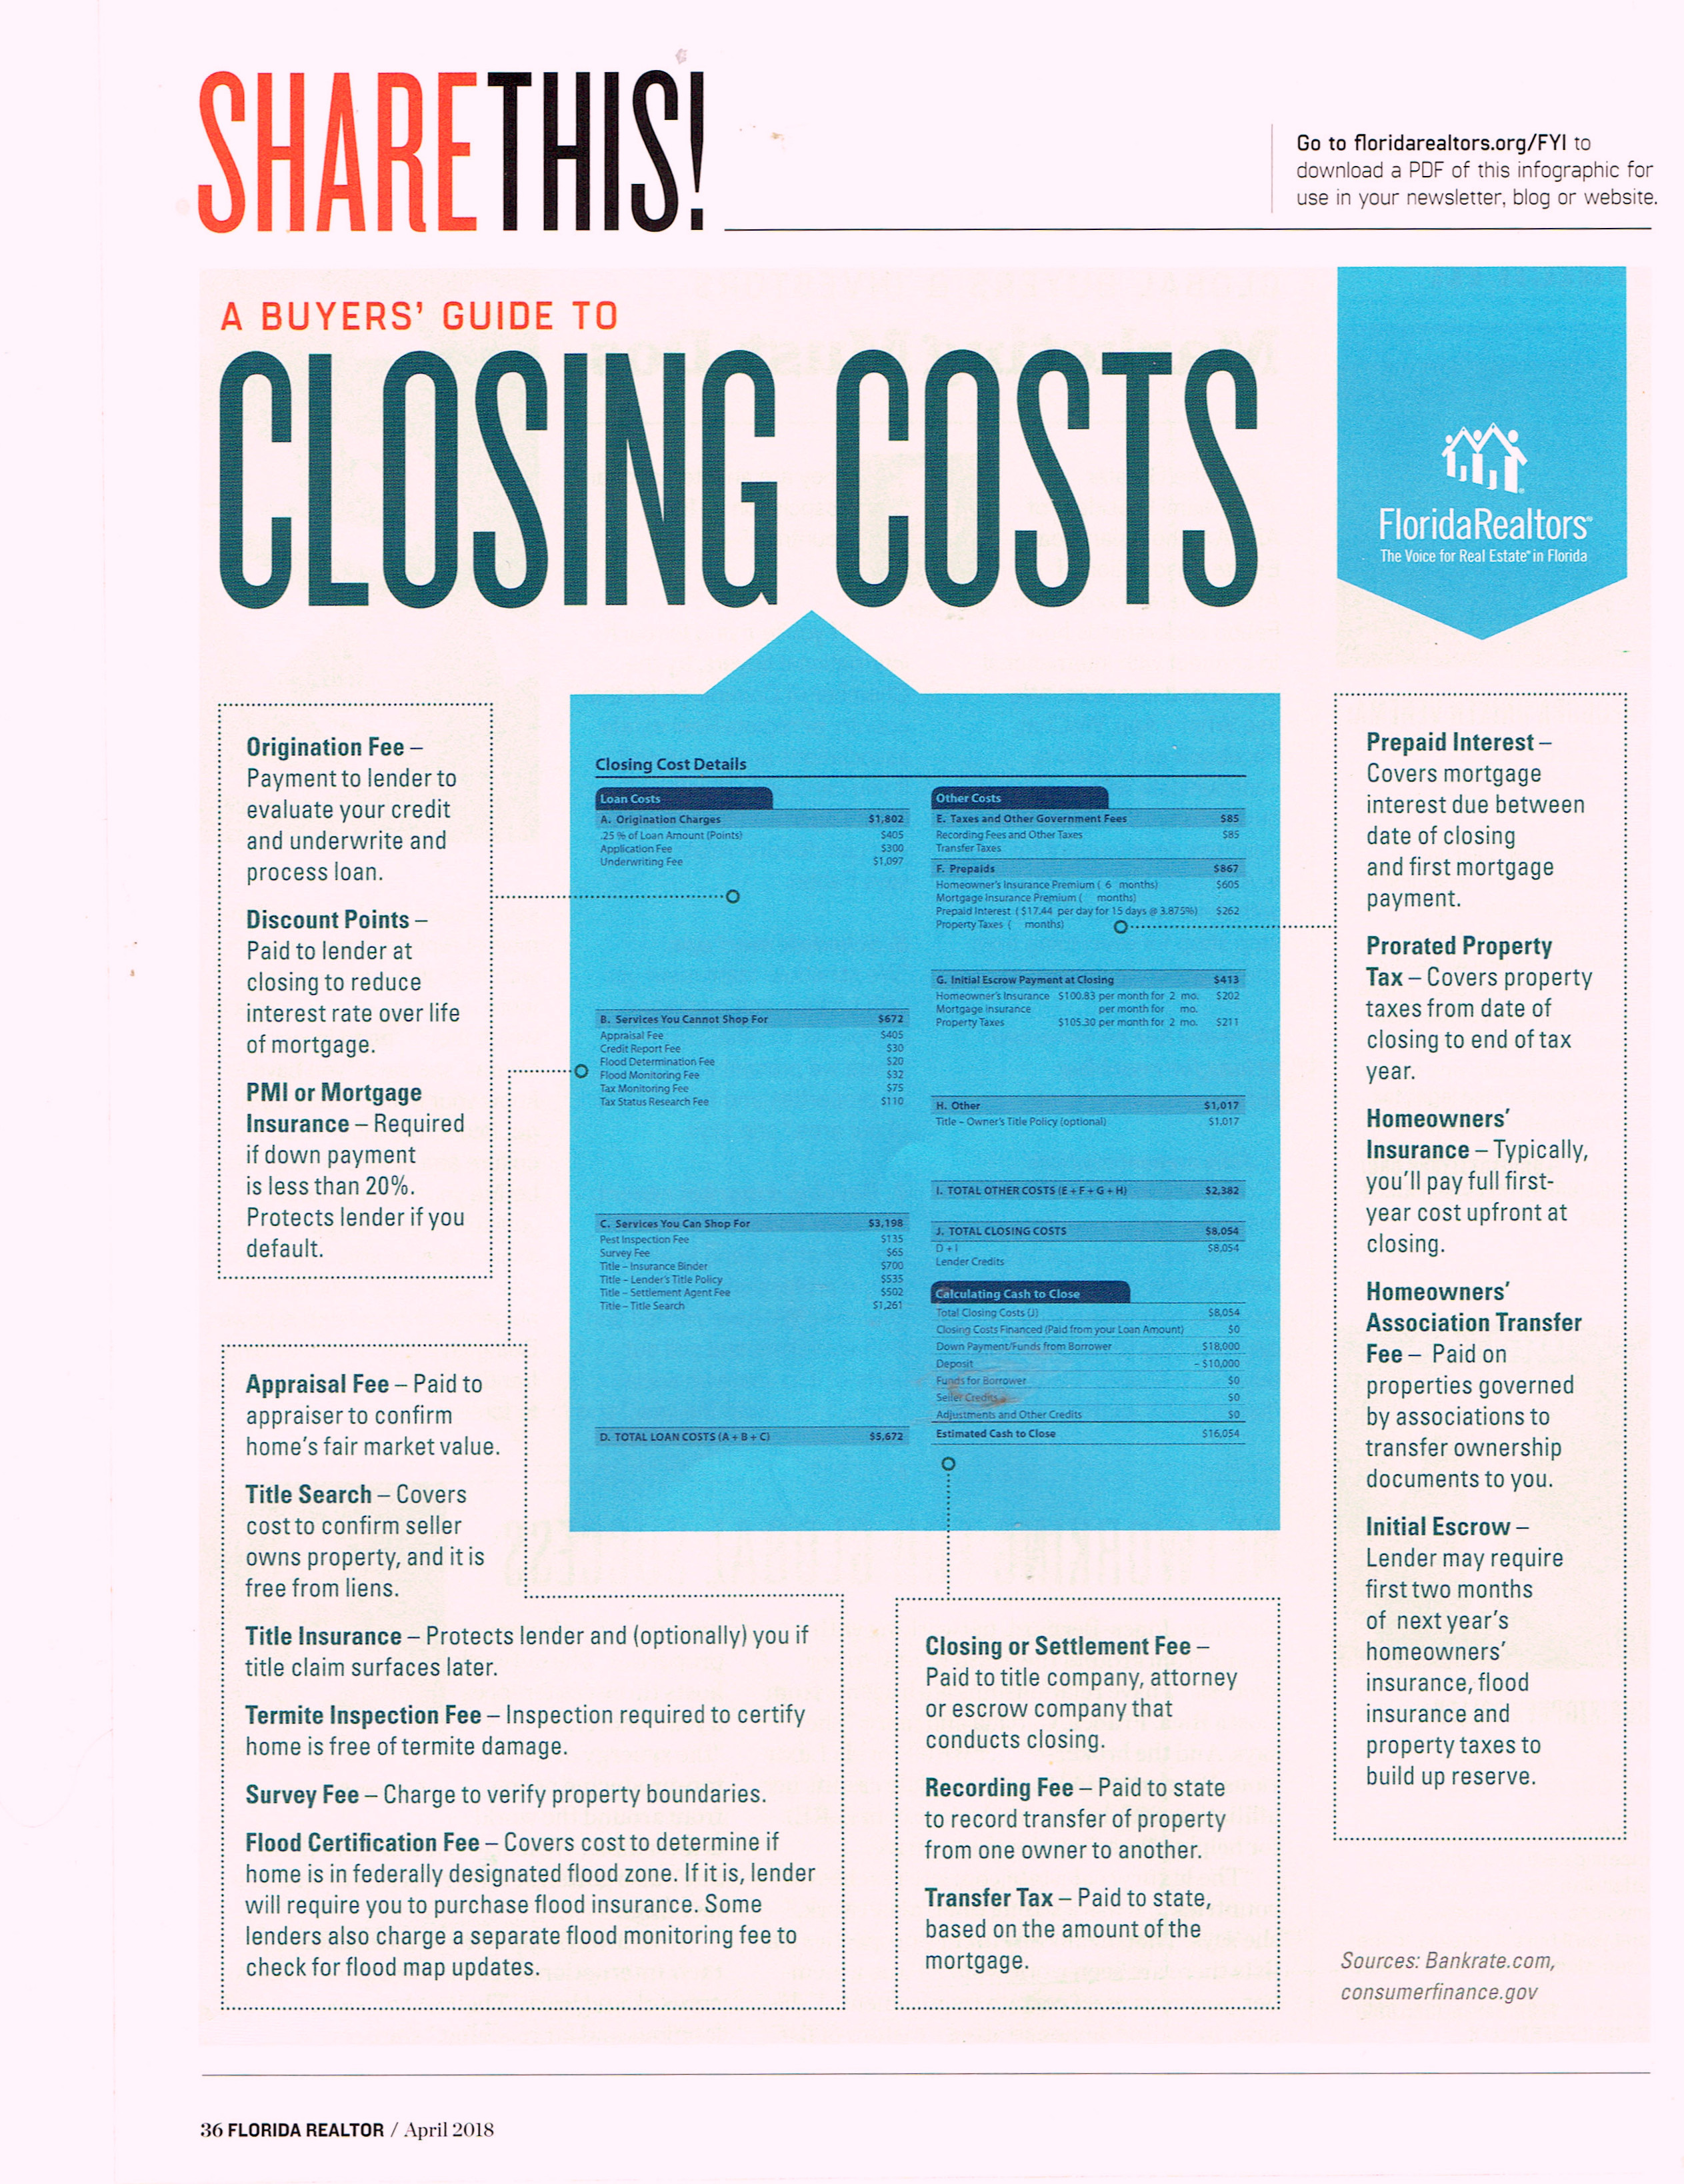 buyers guide to closing costs in boca raton florida